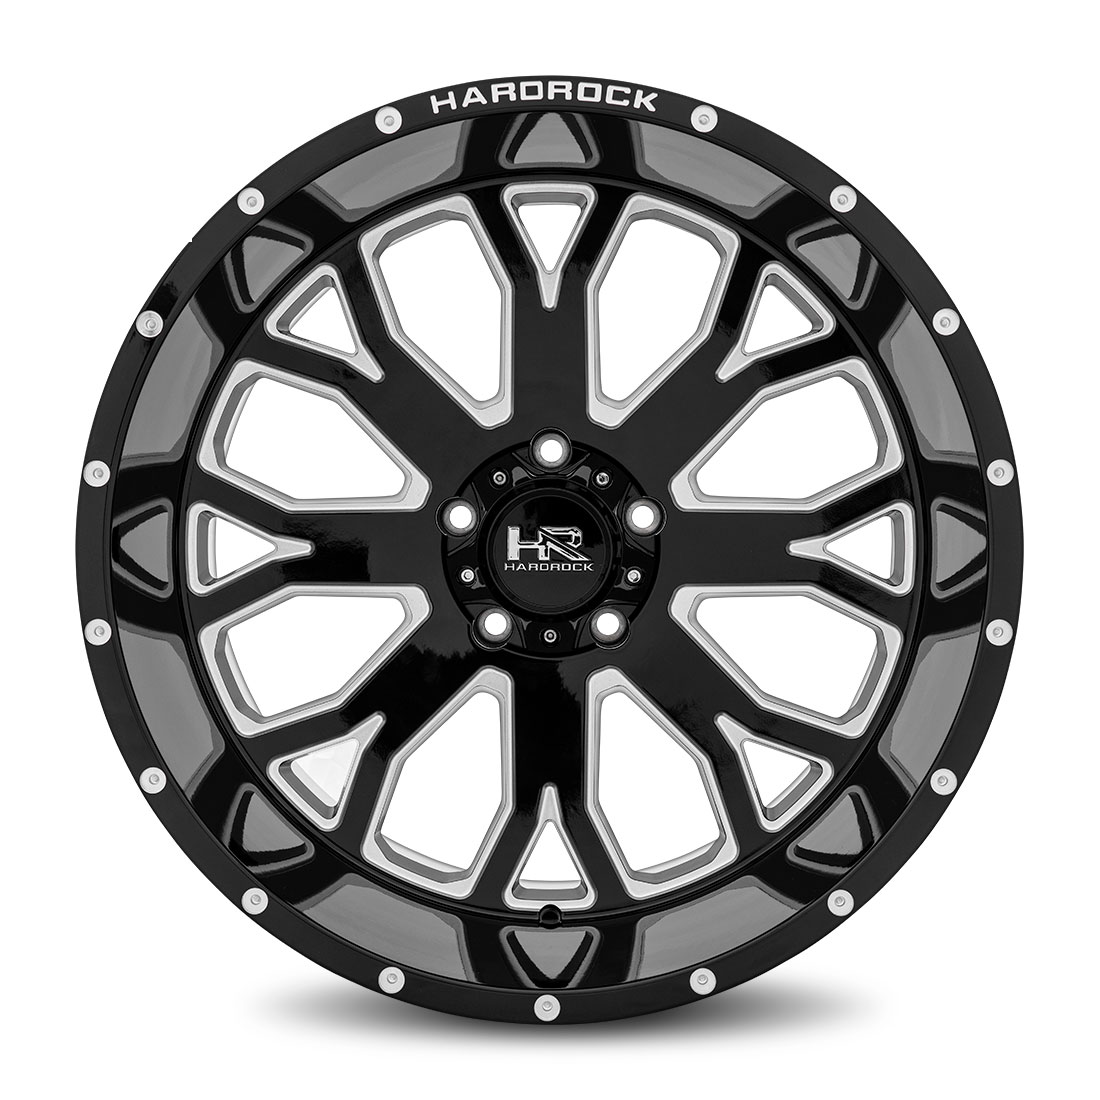 Hardrock Offroad Wheels H504 Slammer-Xposed - Gloss Black Milled - 22x12